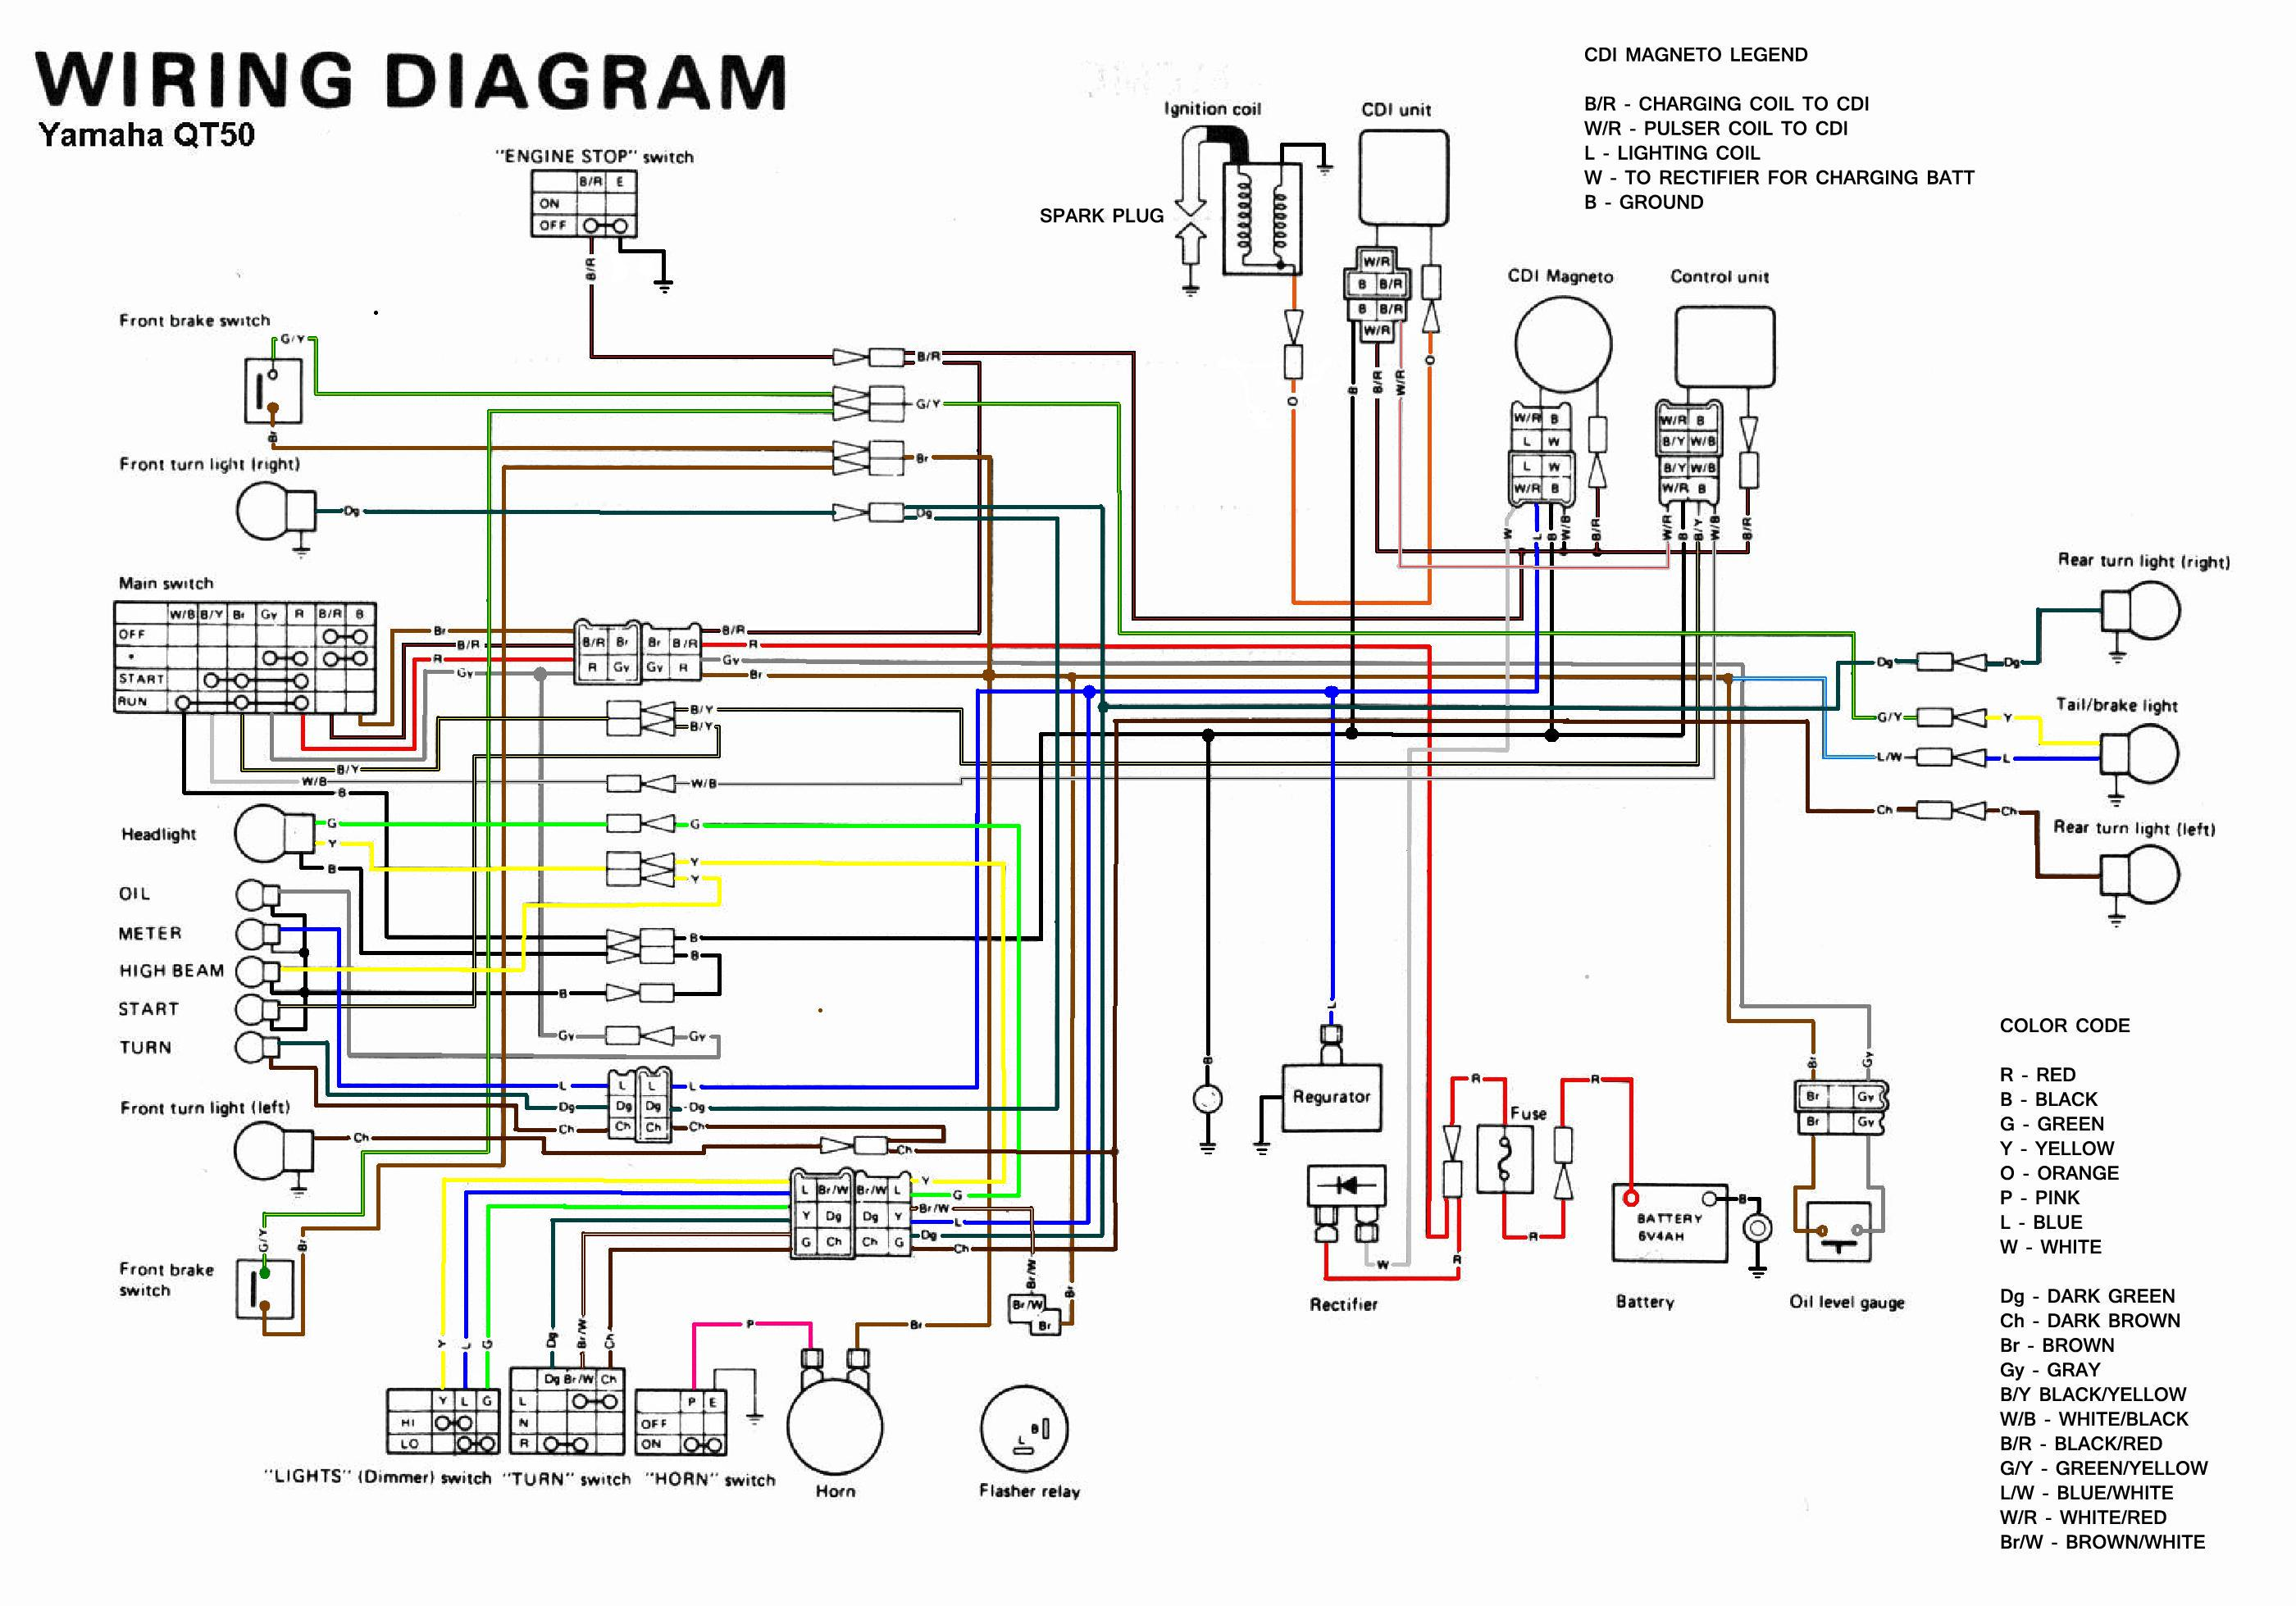 diagram] 2005 yamaha wiring schematic diagram full version hd quality schematic  diagram - mami-diagram.radd.fr  diagram database - radd